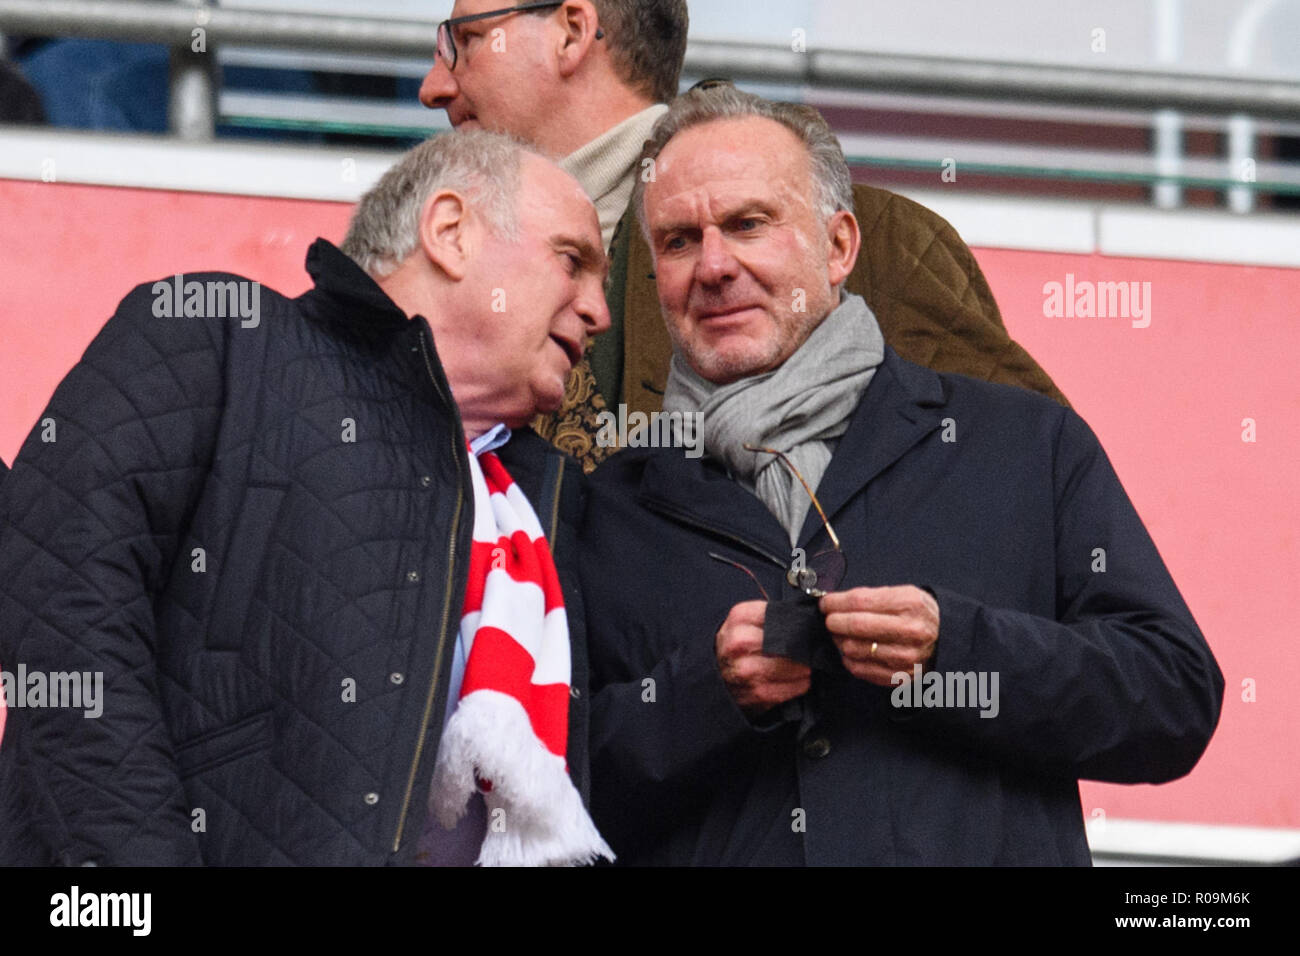 Munich, Germany. 03rd Nov, 2018. Munich, Germany. 03rd Nov, 2018. Soccer: Bundesliga, Bayern Munich - SC Freiburg, 10th matchday in the Allianz Arena. Uli Hoeneß, club president of FC Bayern (l), and Karl-Heinz Rummenigge, CEO of FC Bayern, talk in the stands before the match begins. (Best possible quality) Photo: Matthias Balk/dpa - IMPORTANT NOTE: In accordance with the requirements of the DFL Deutsche Fußball Liga or the DFB Deutscher Fußball-Bund, it is prohibited to use or have used photographs taken in the stadium and/or the match in the form of sequence images and/or video-like photo se Stock Photo